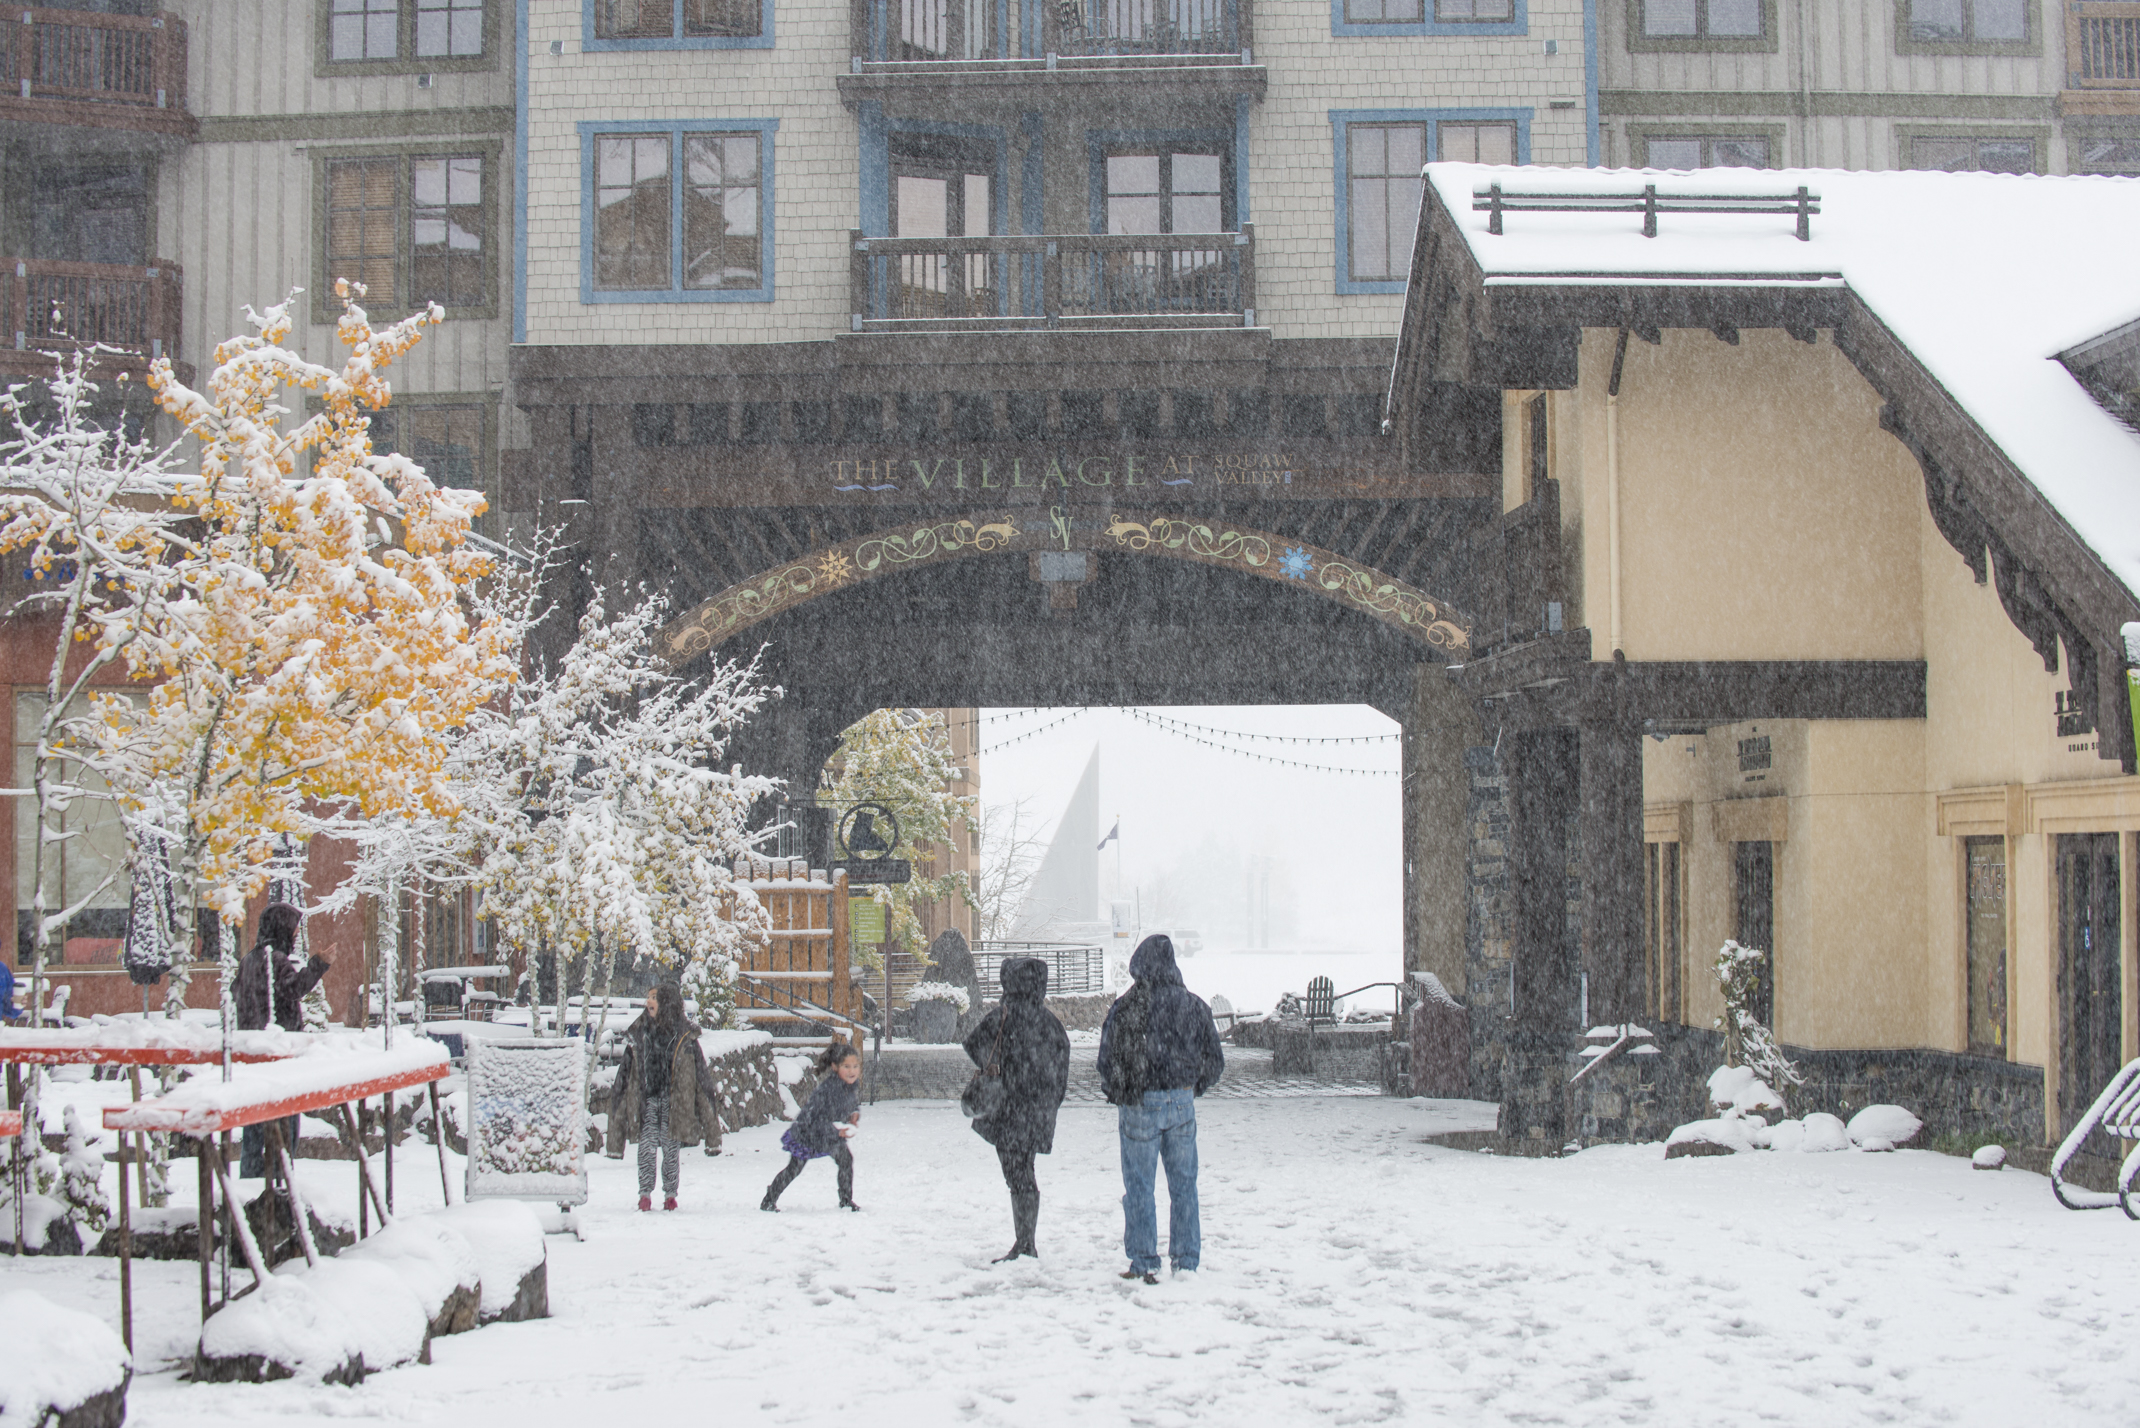 The Village at Squaw Valley became a winter wonderland this morning as several inches of snow fell at the resort and throughout the Lake Tahoe area. (Squaw Valley photo)